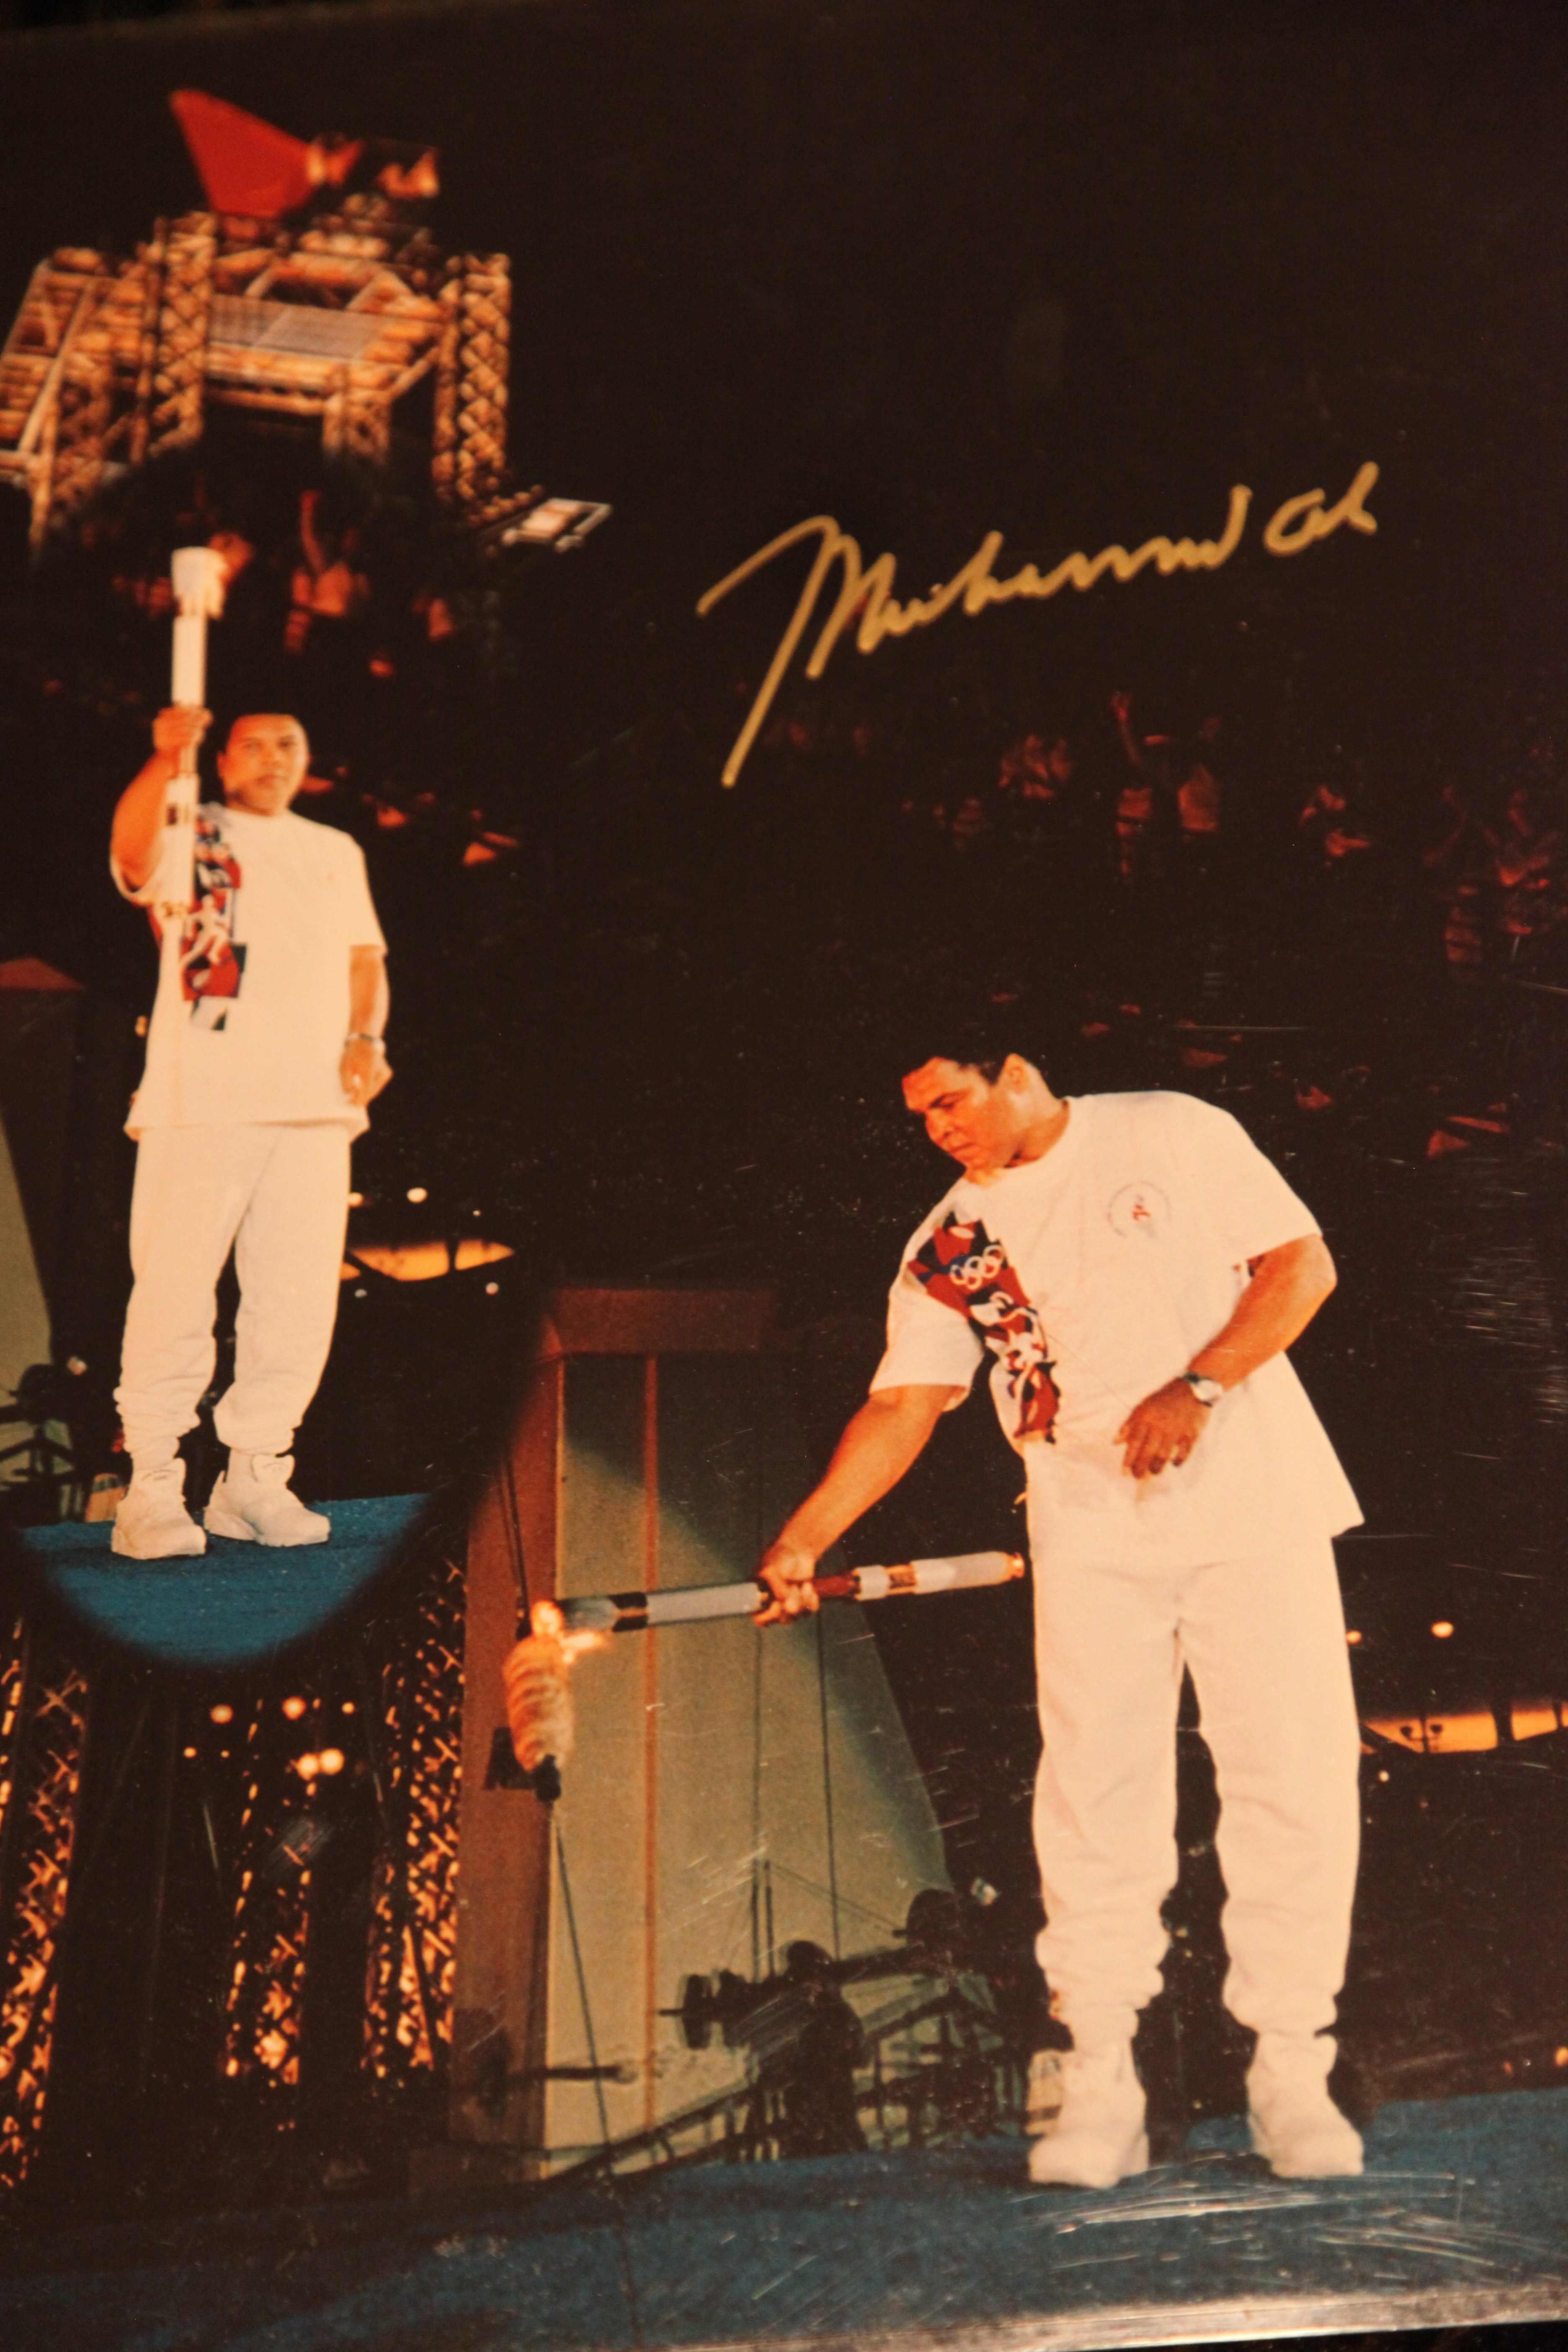 Signed 16x20 mint condition copy of Muhammad Ali lighting the Olympic Torch at the 1996 Olympic Ceremony in Atlanta